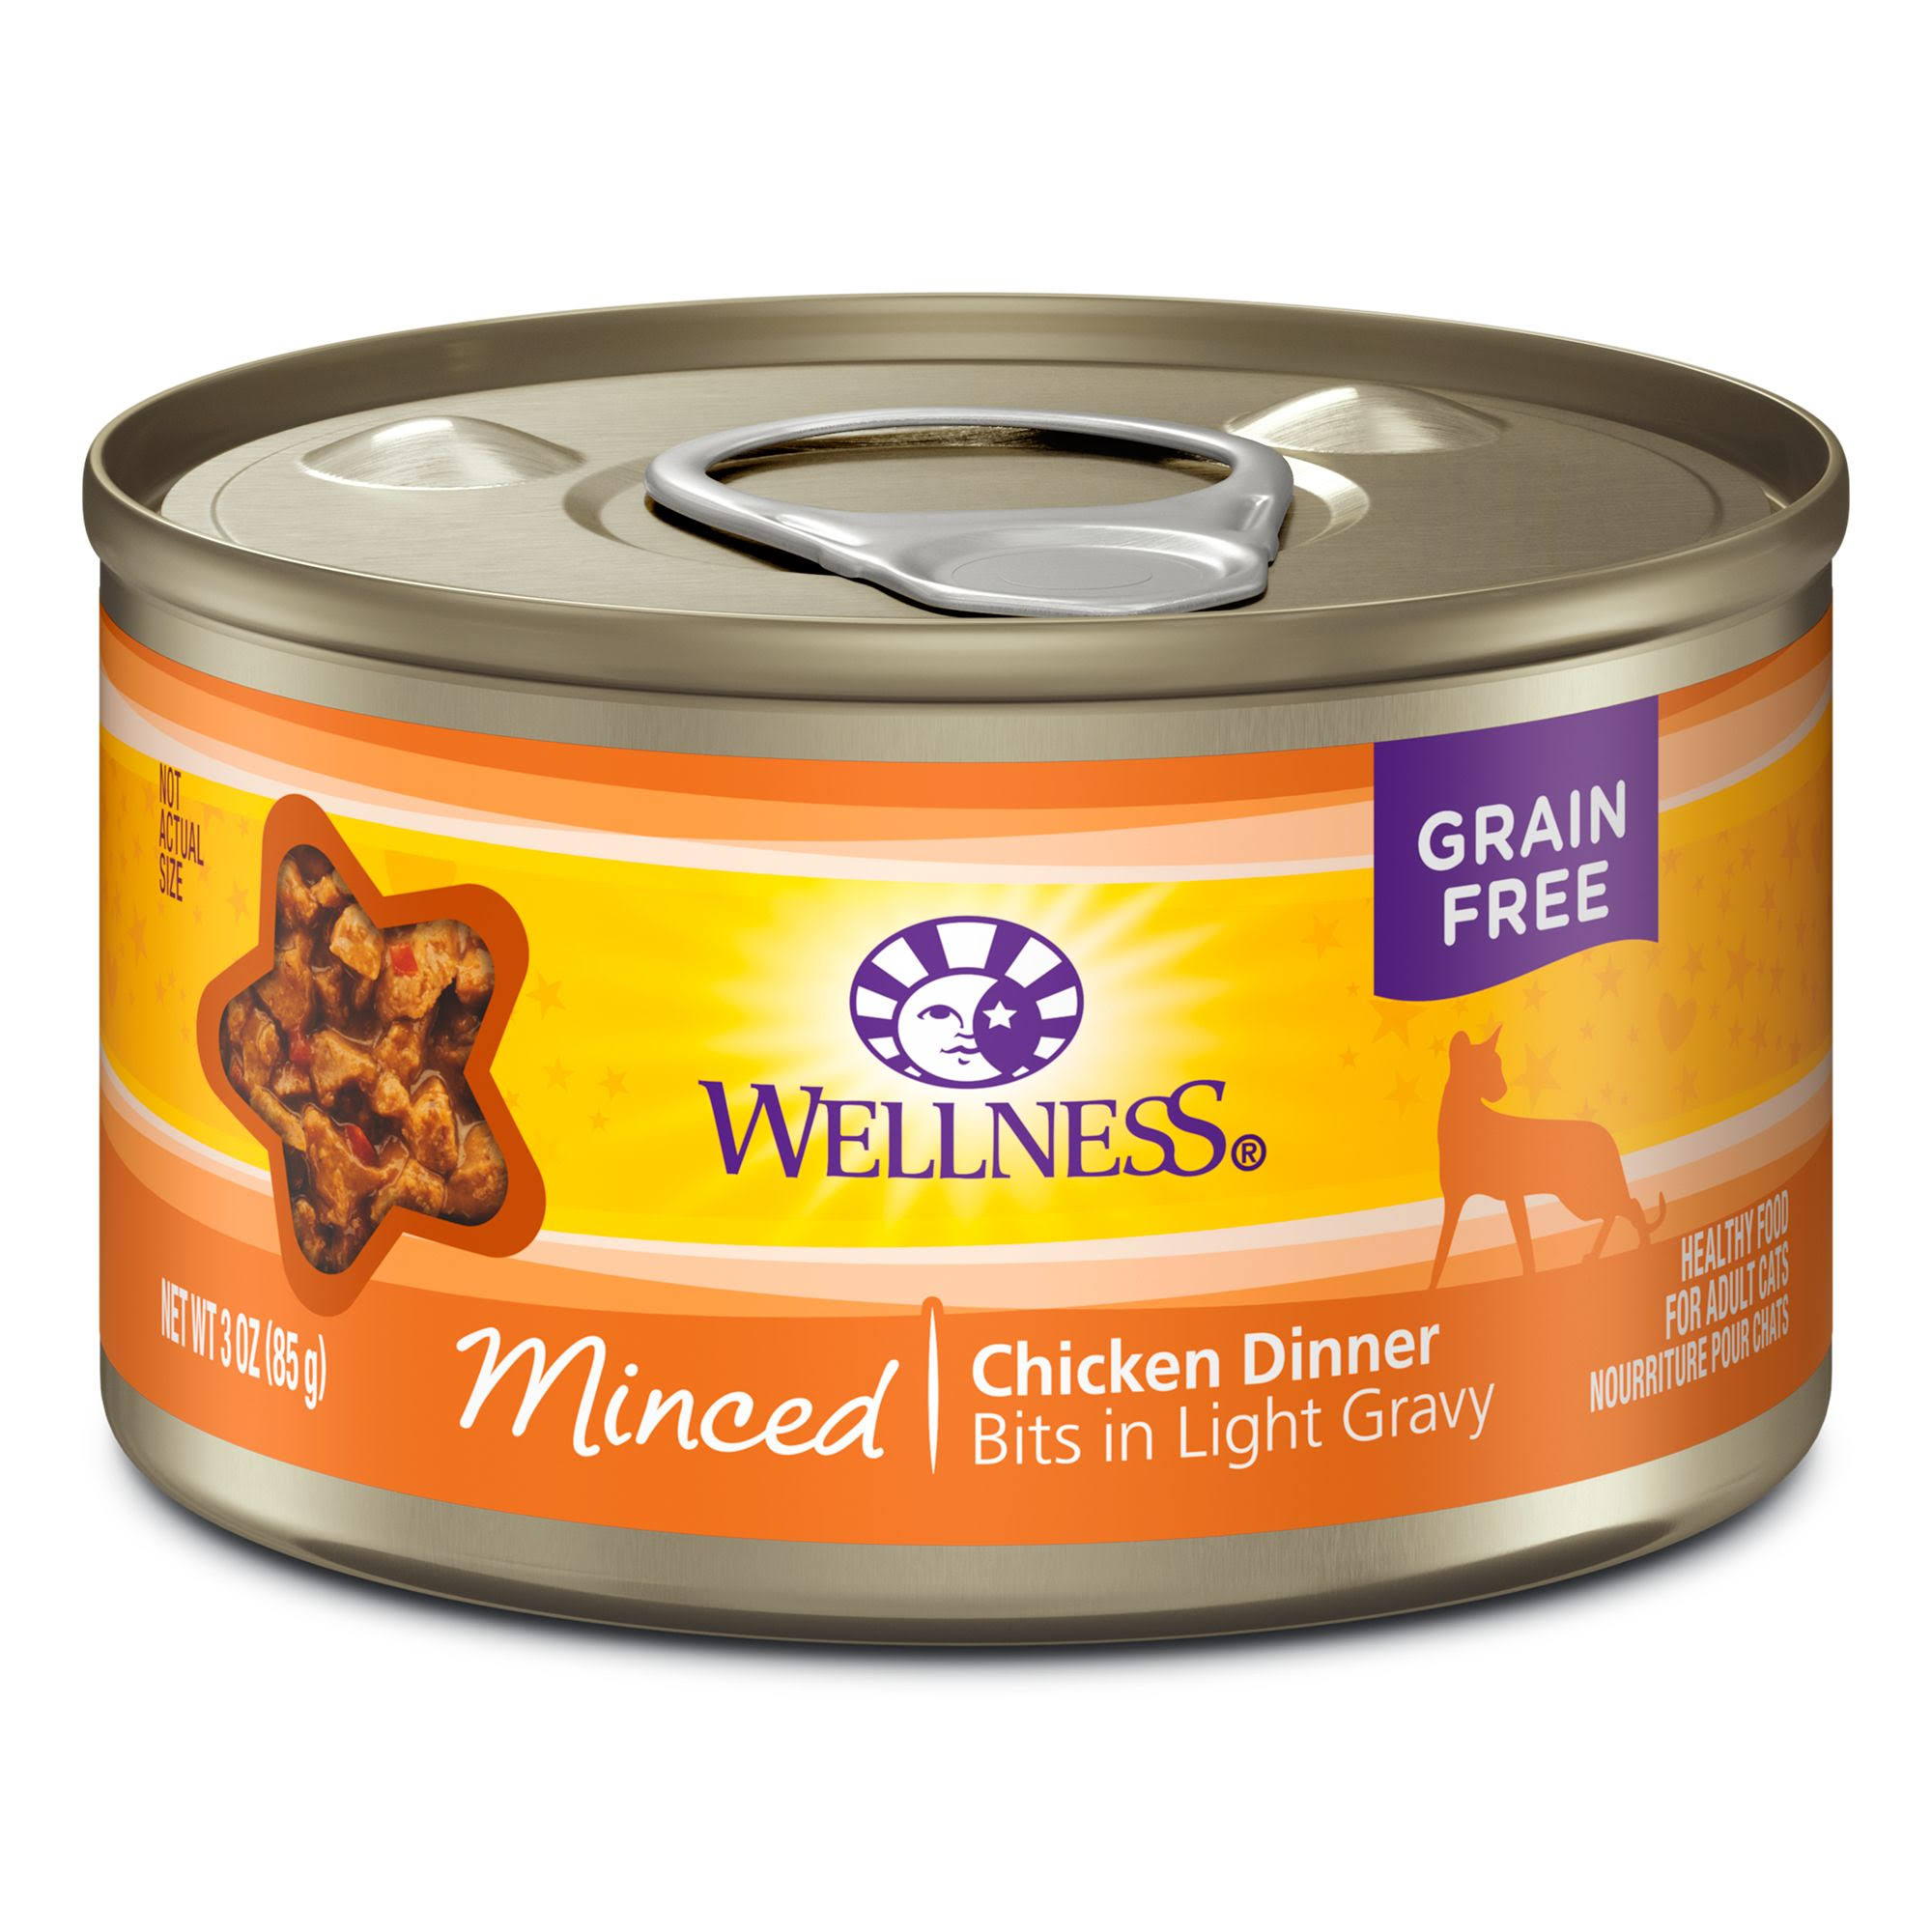 Wellness Grain Free Cat Food - Minced Chicken Dinner, 85g